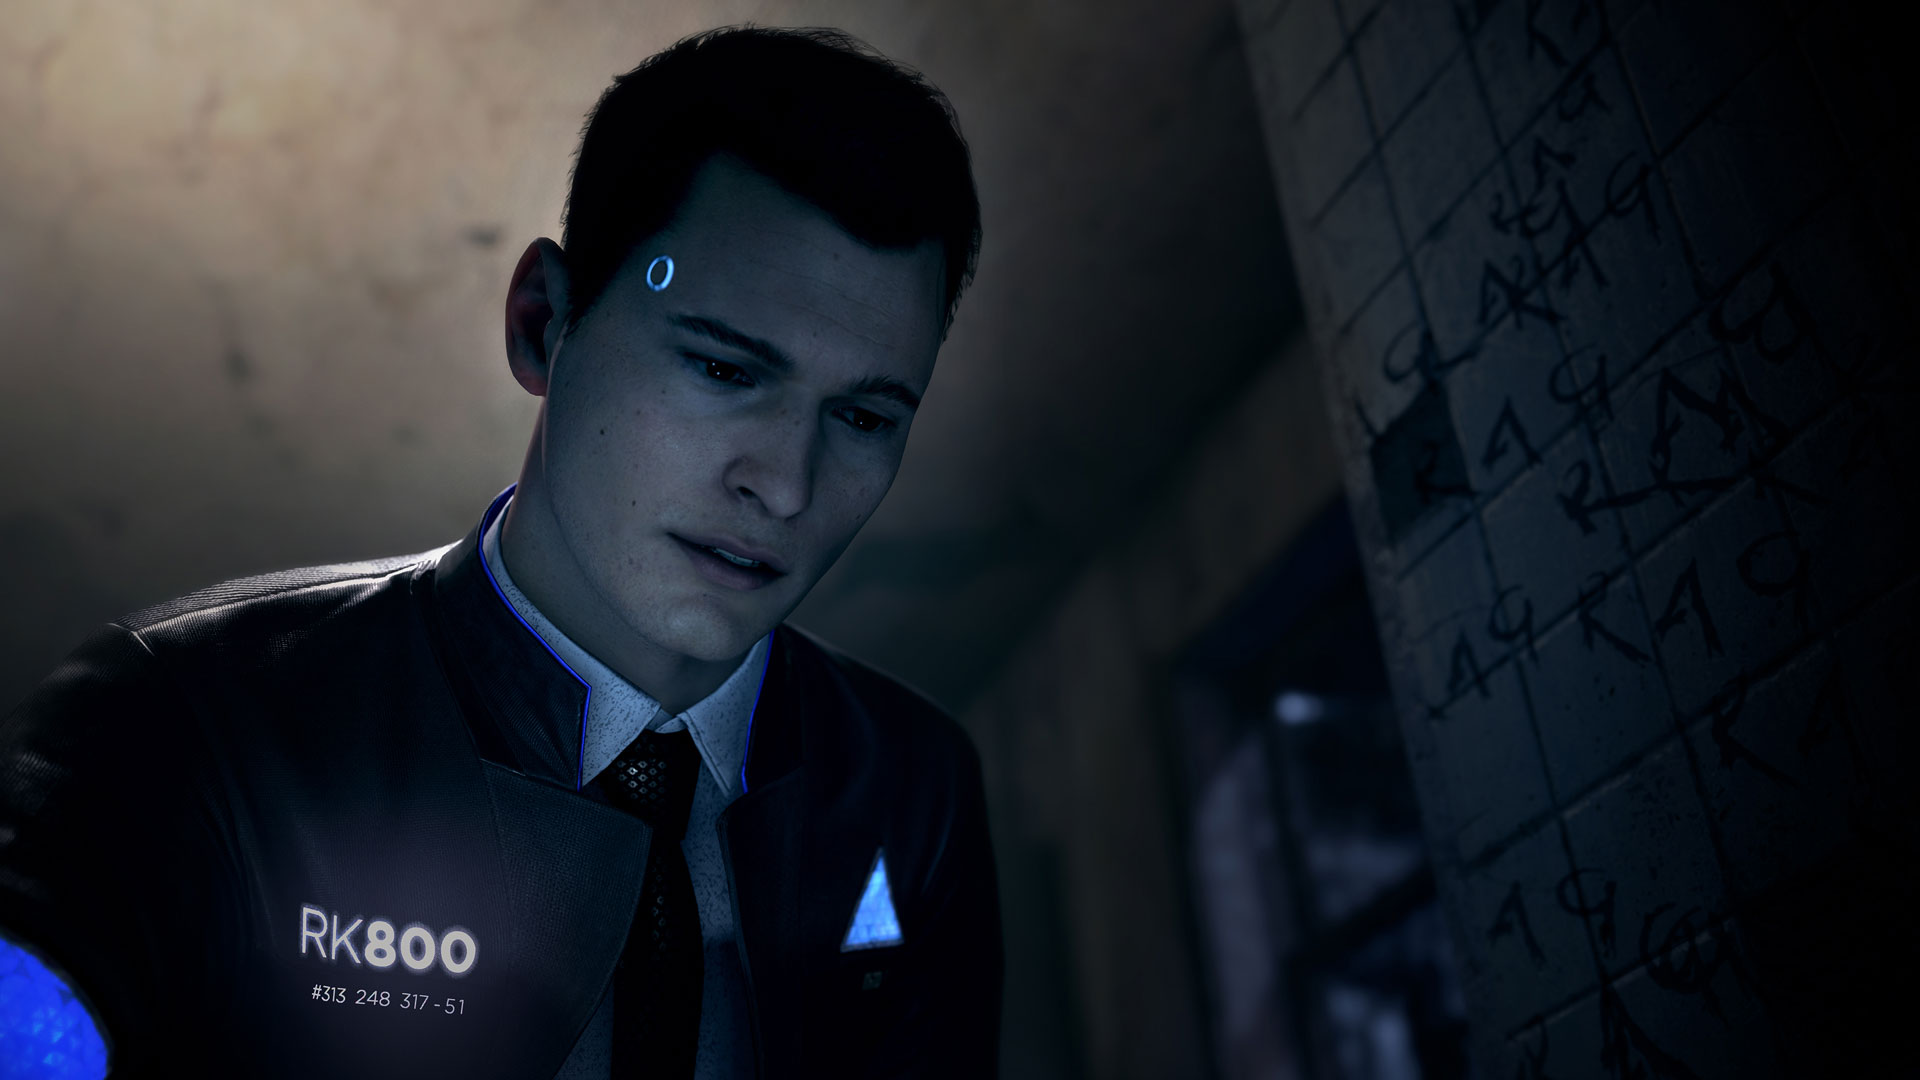 Connor Detroit Become Human Wallpaper: Detroit: Become Human Has Potential But It Targets A